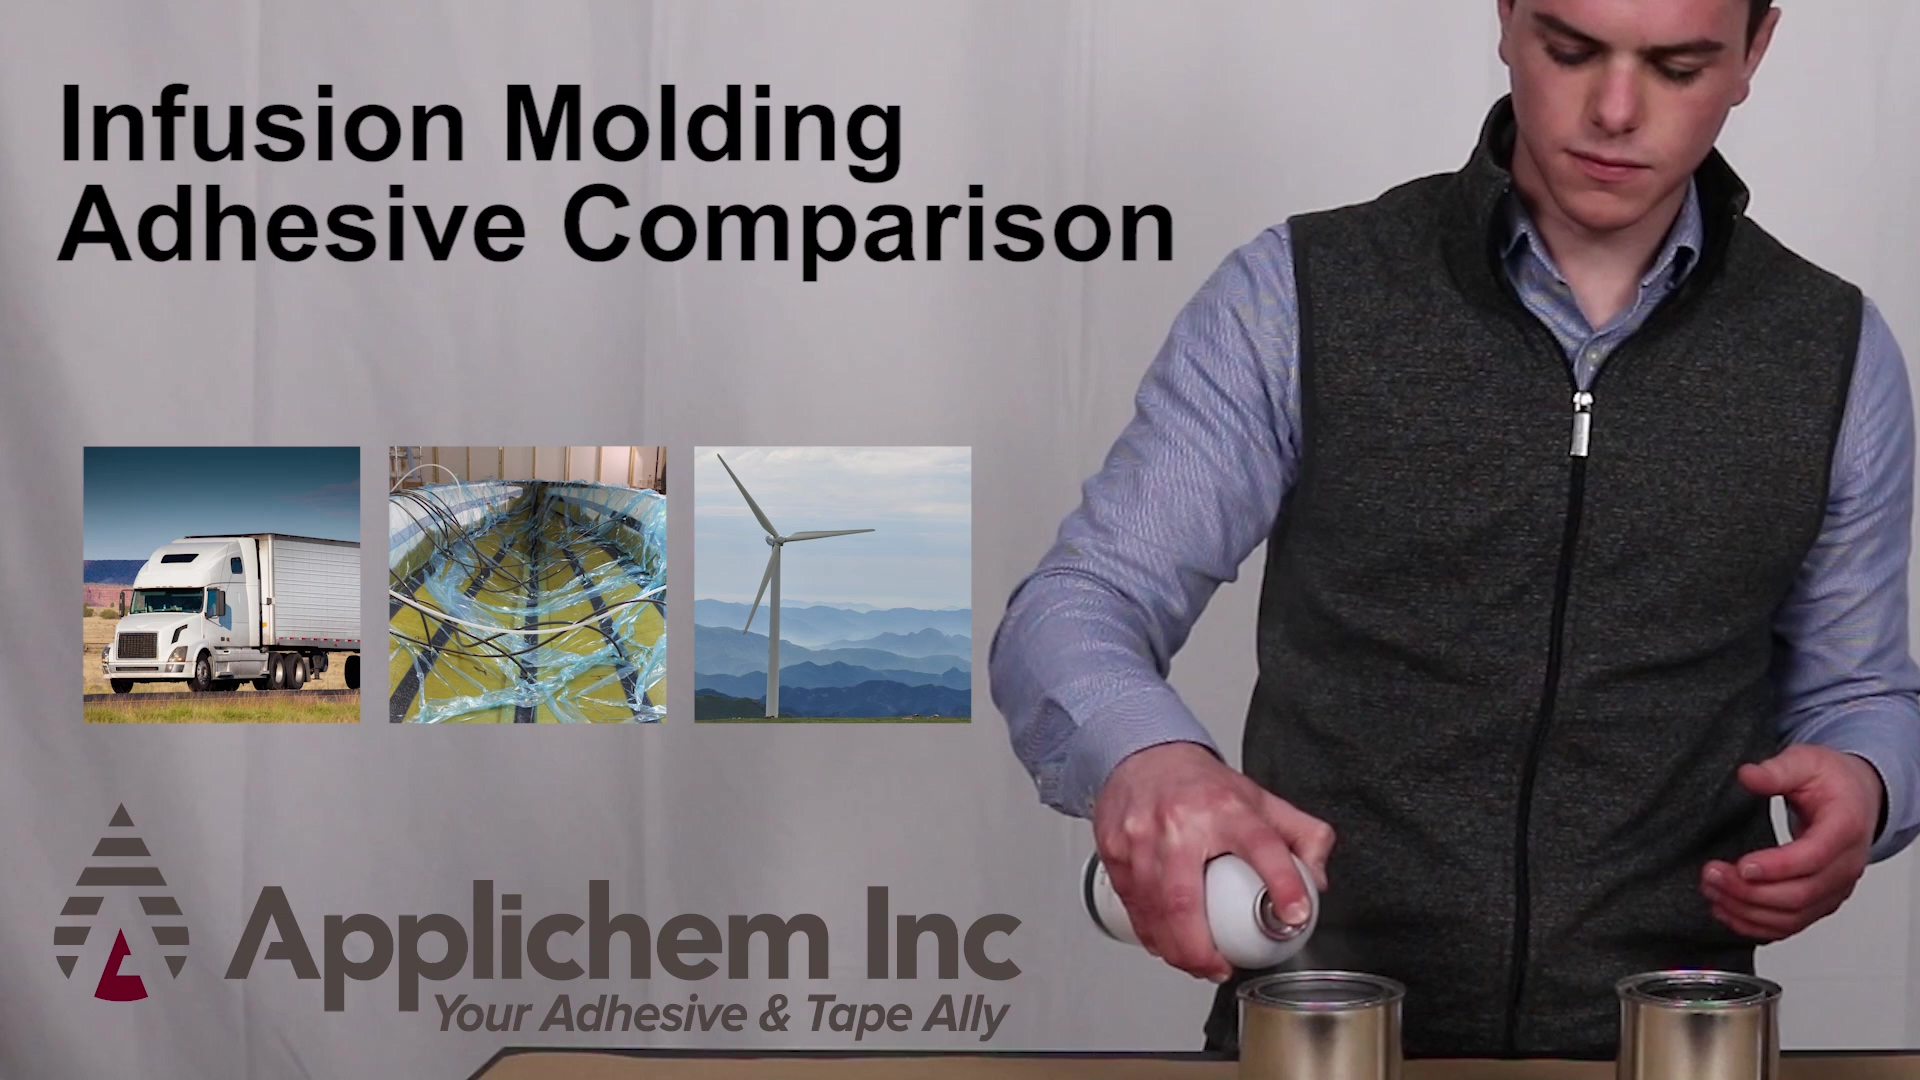 Infusion Molding Product Comparison - v4 - March 2020